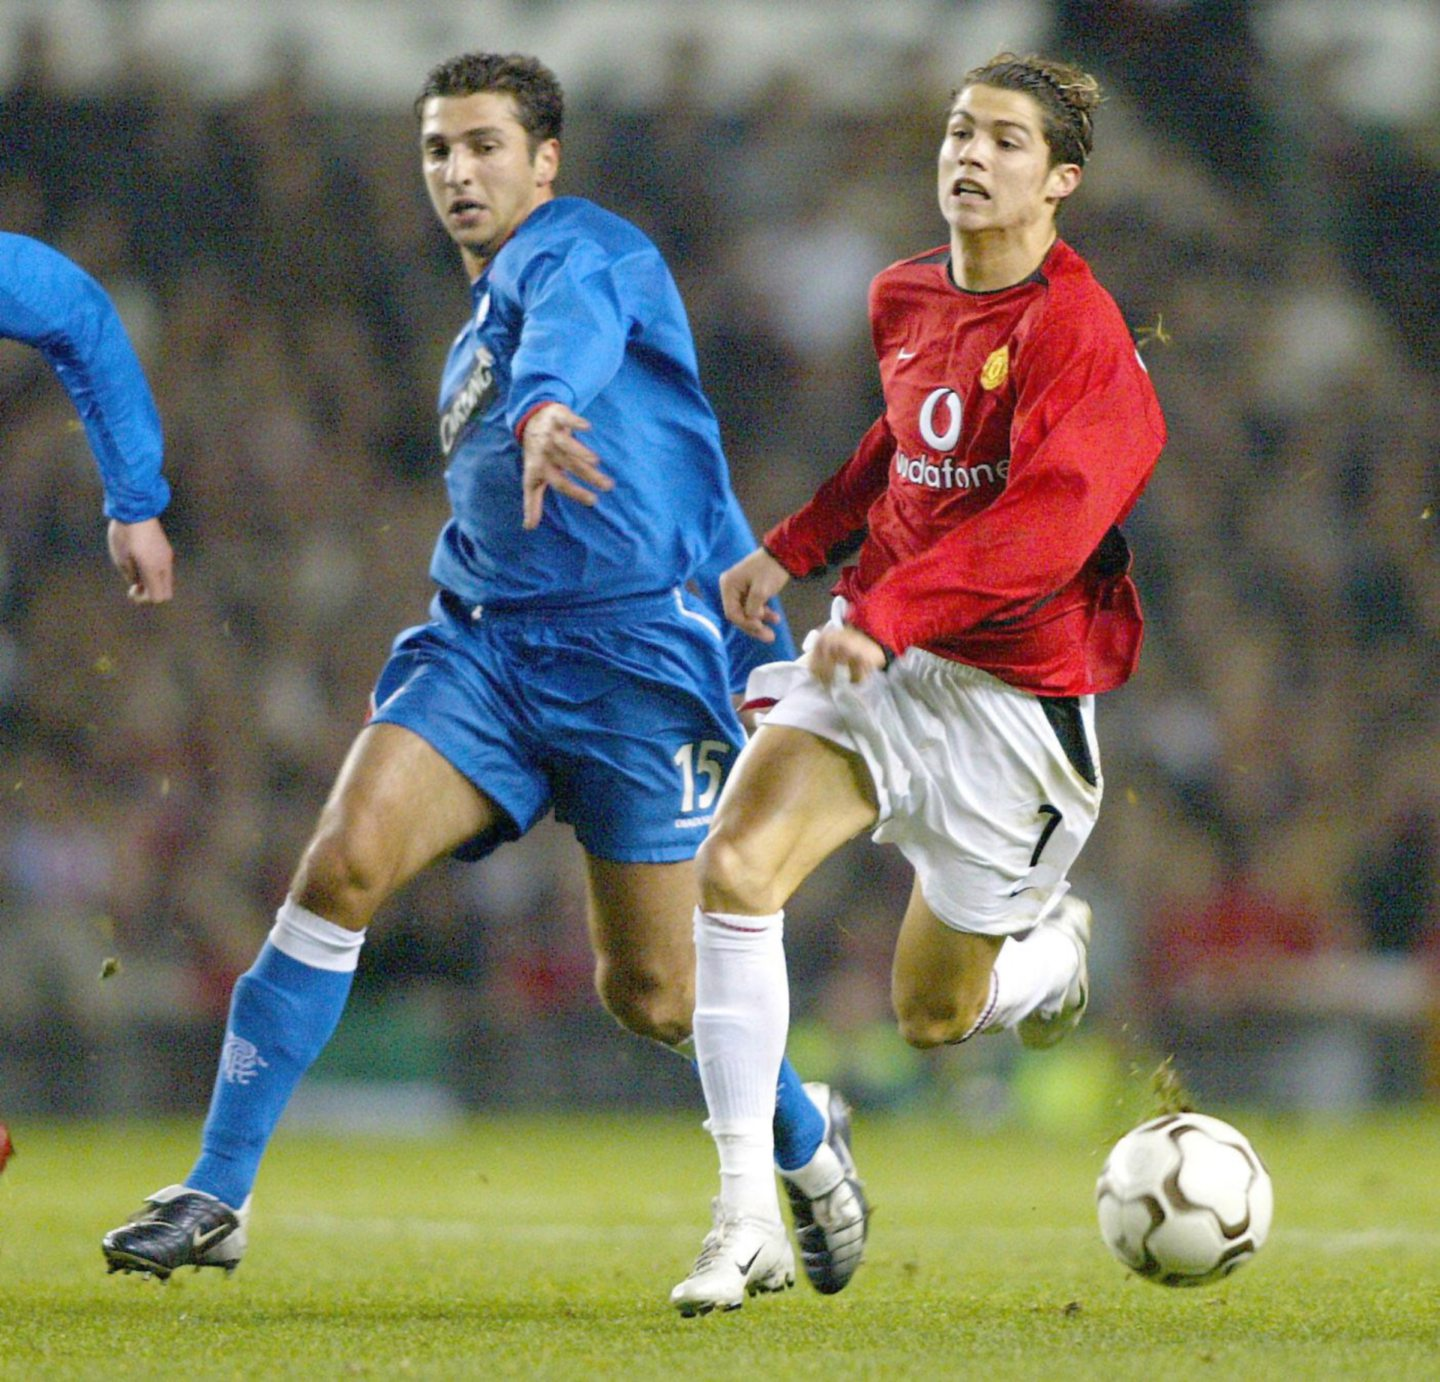 Cristiano Ronaldo in action for Manchester United against Rangers.